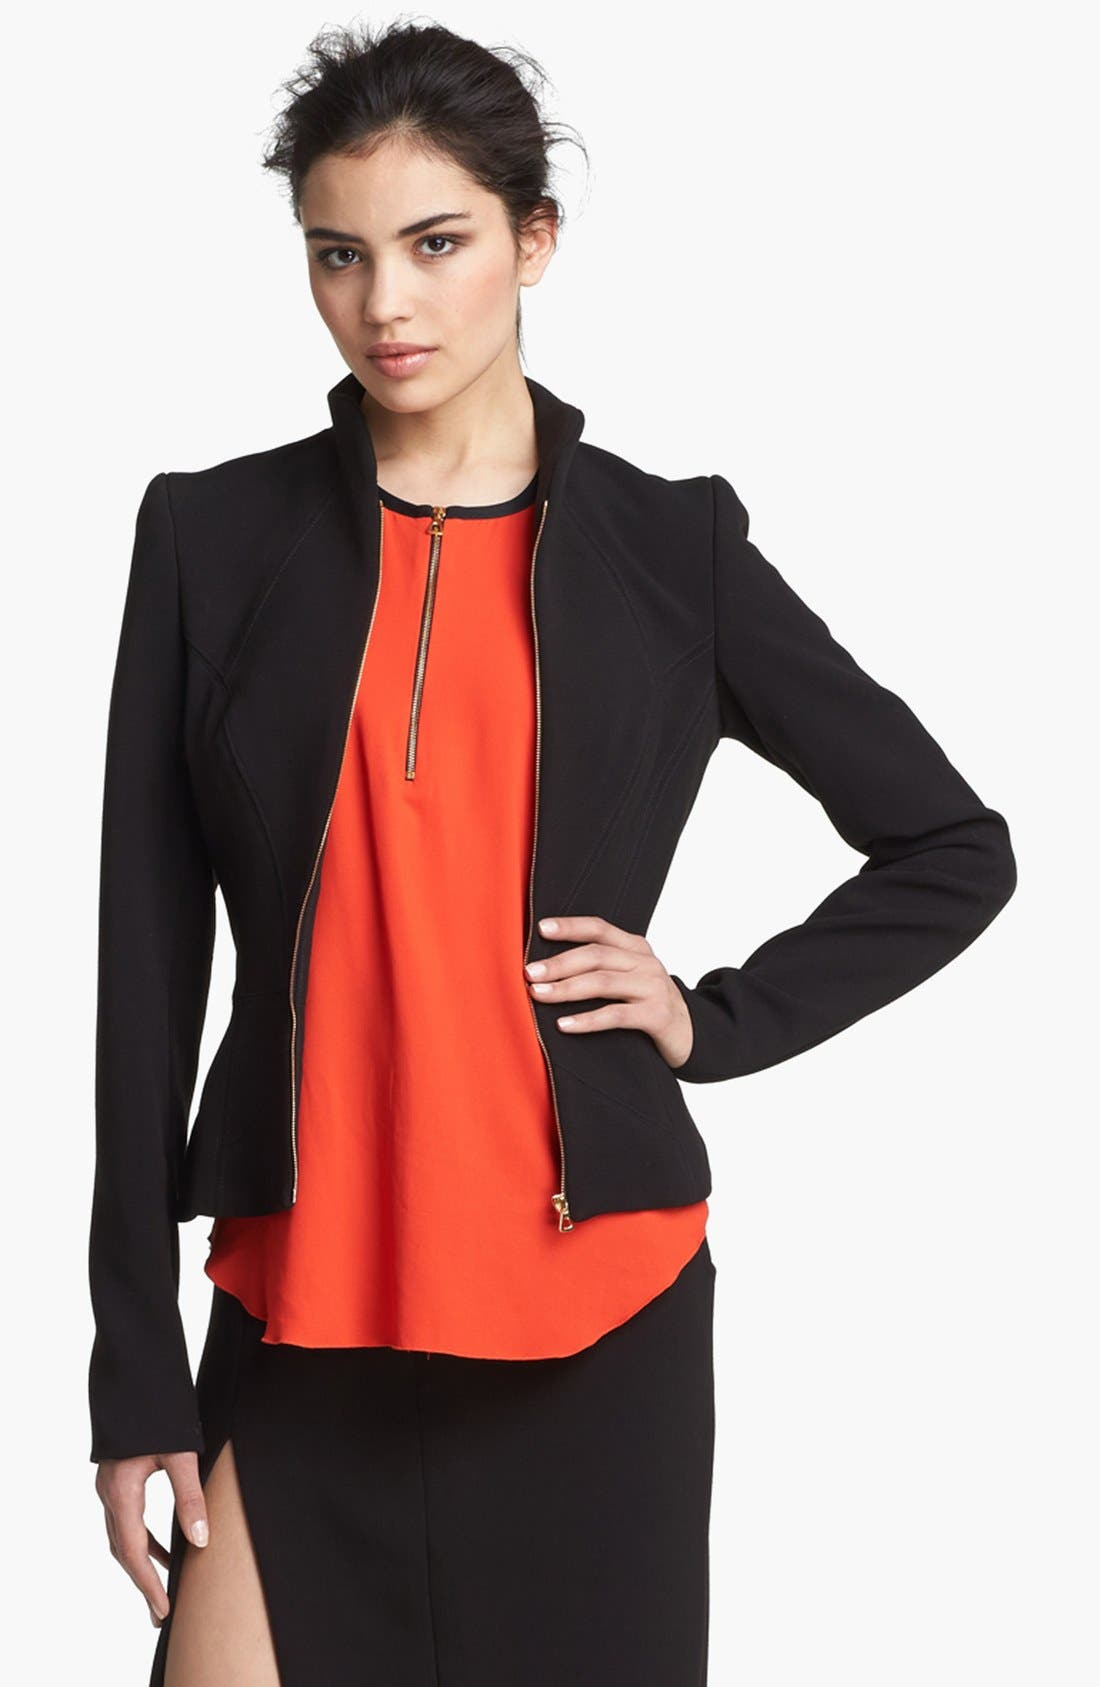 Alternate Image 1 Selected - L'AGENCE Zip Sleeve Ponte Knit Jacket